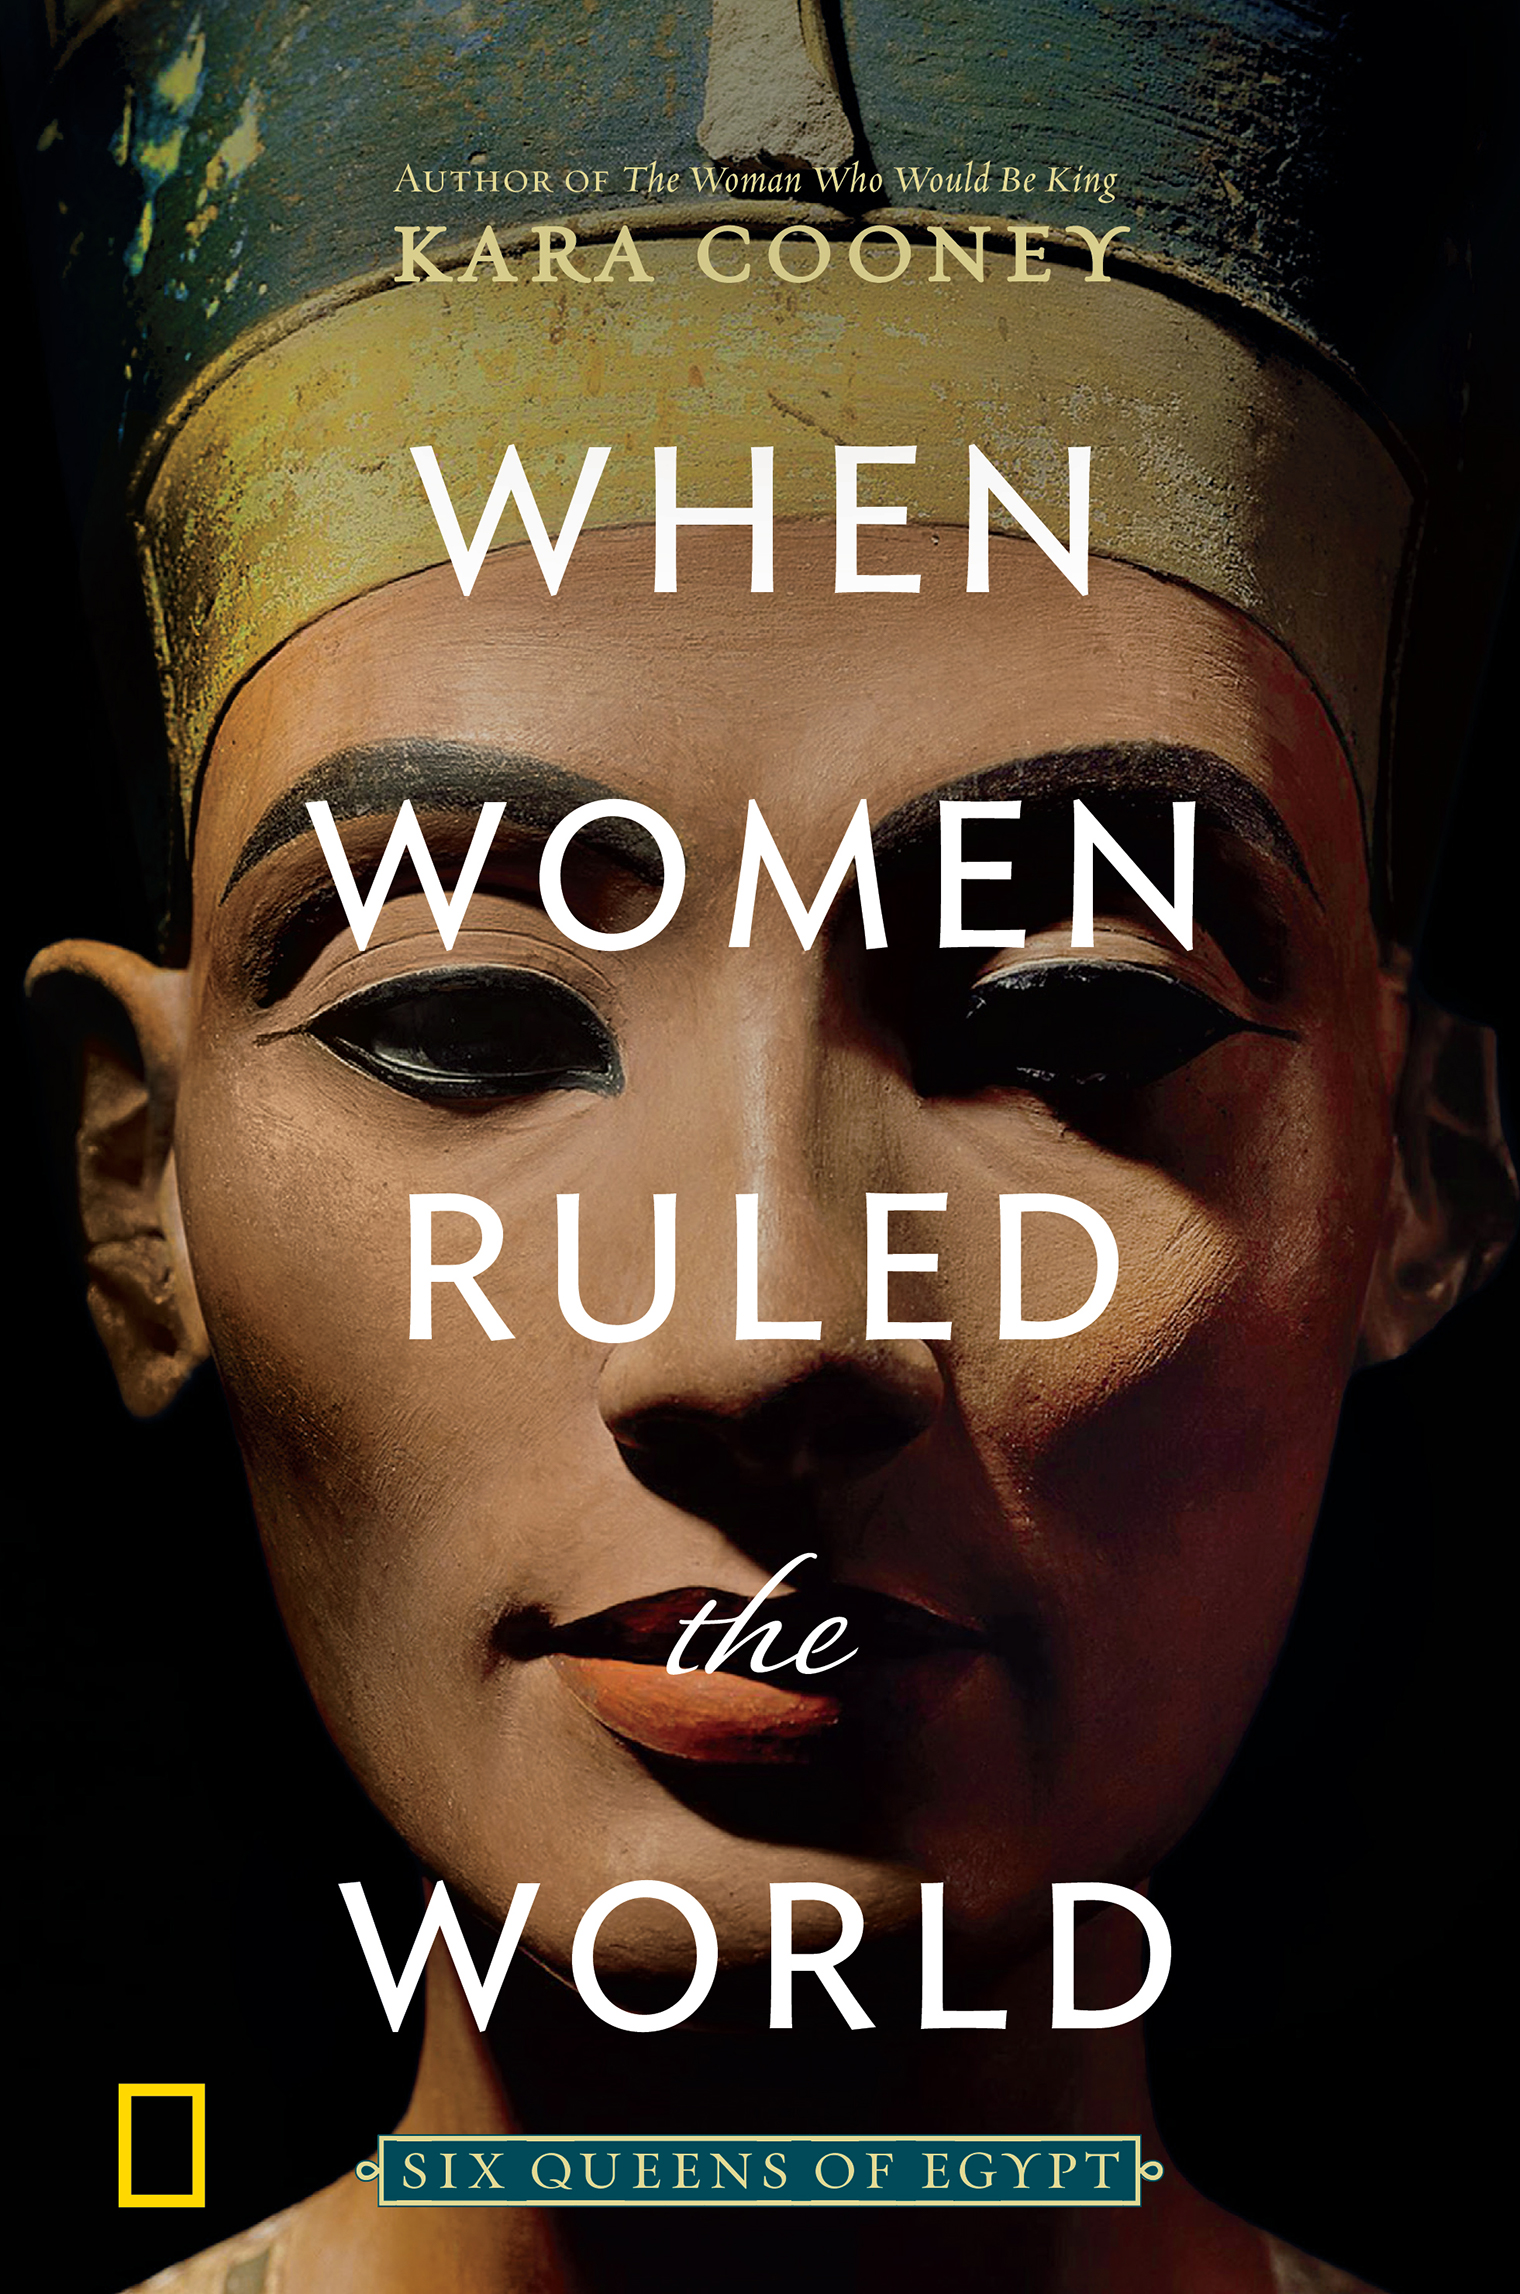 When women ruled the world six queens of Egypt cover image